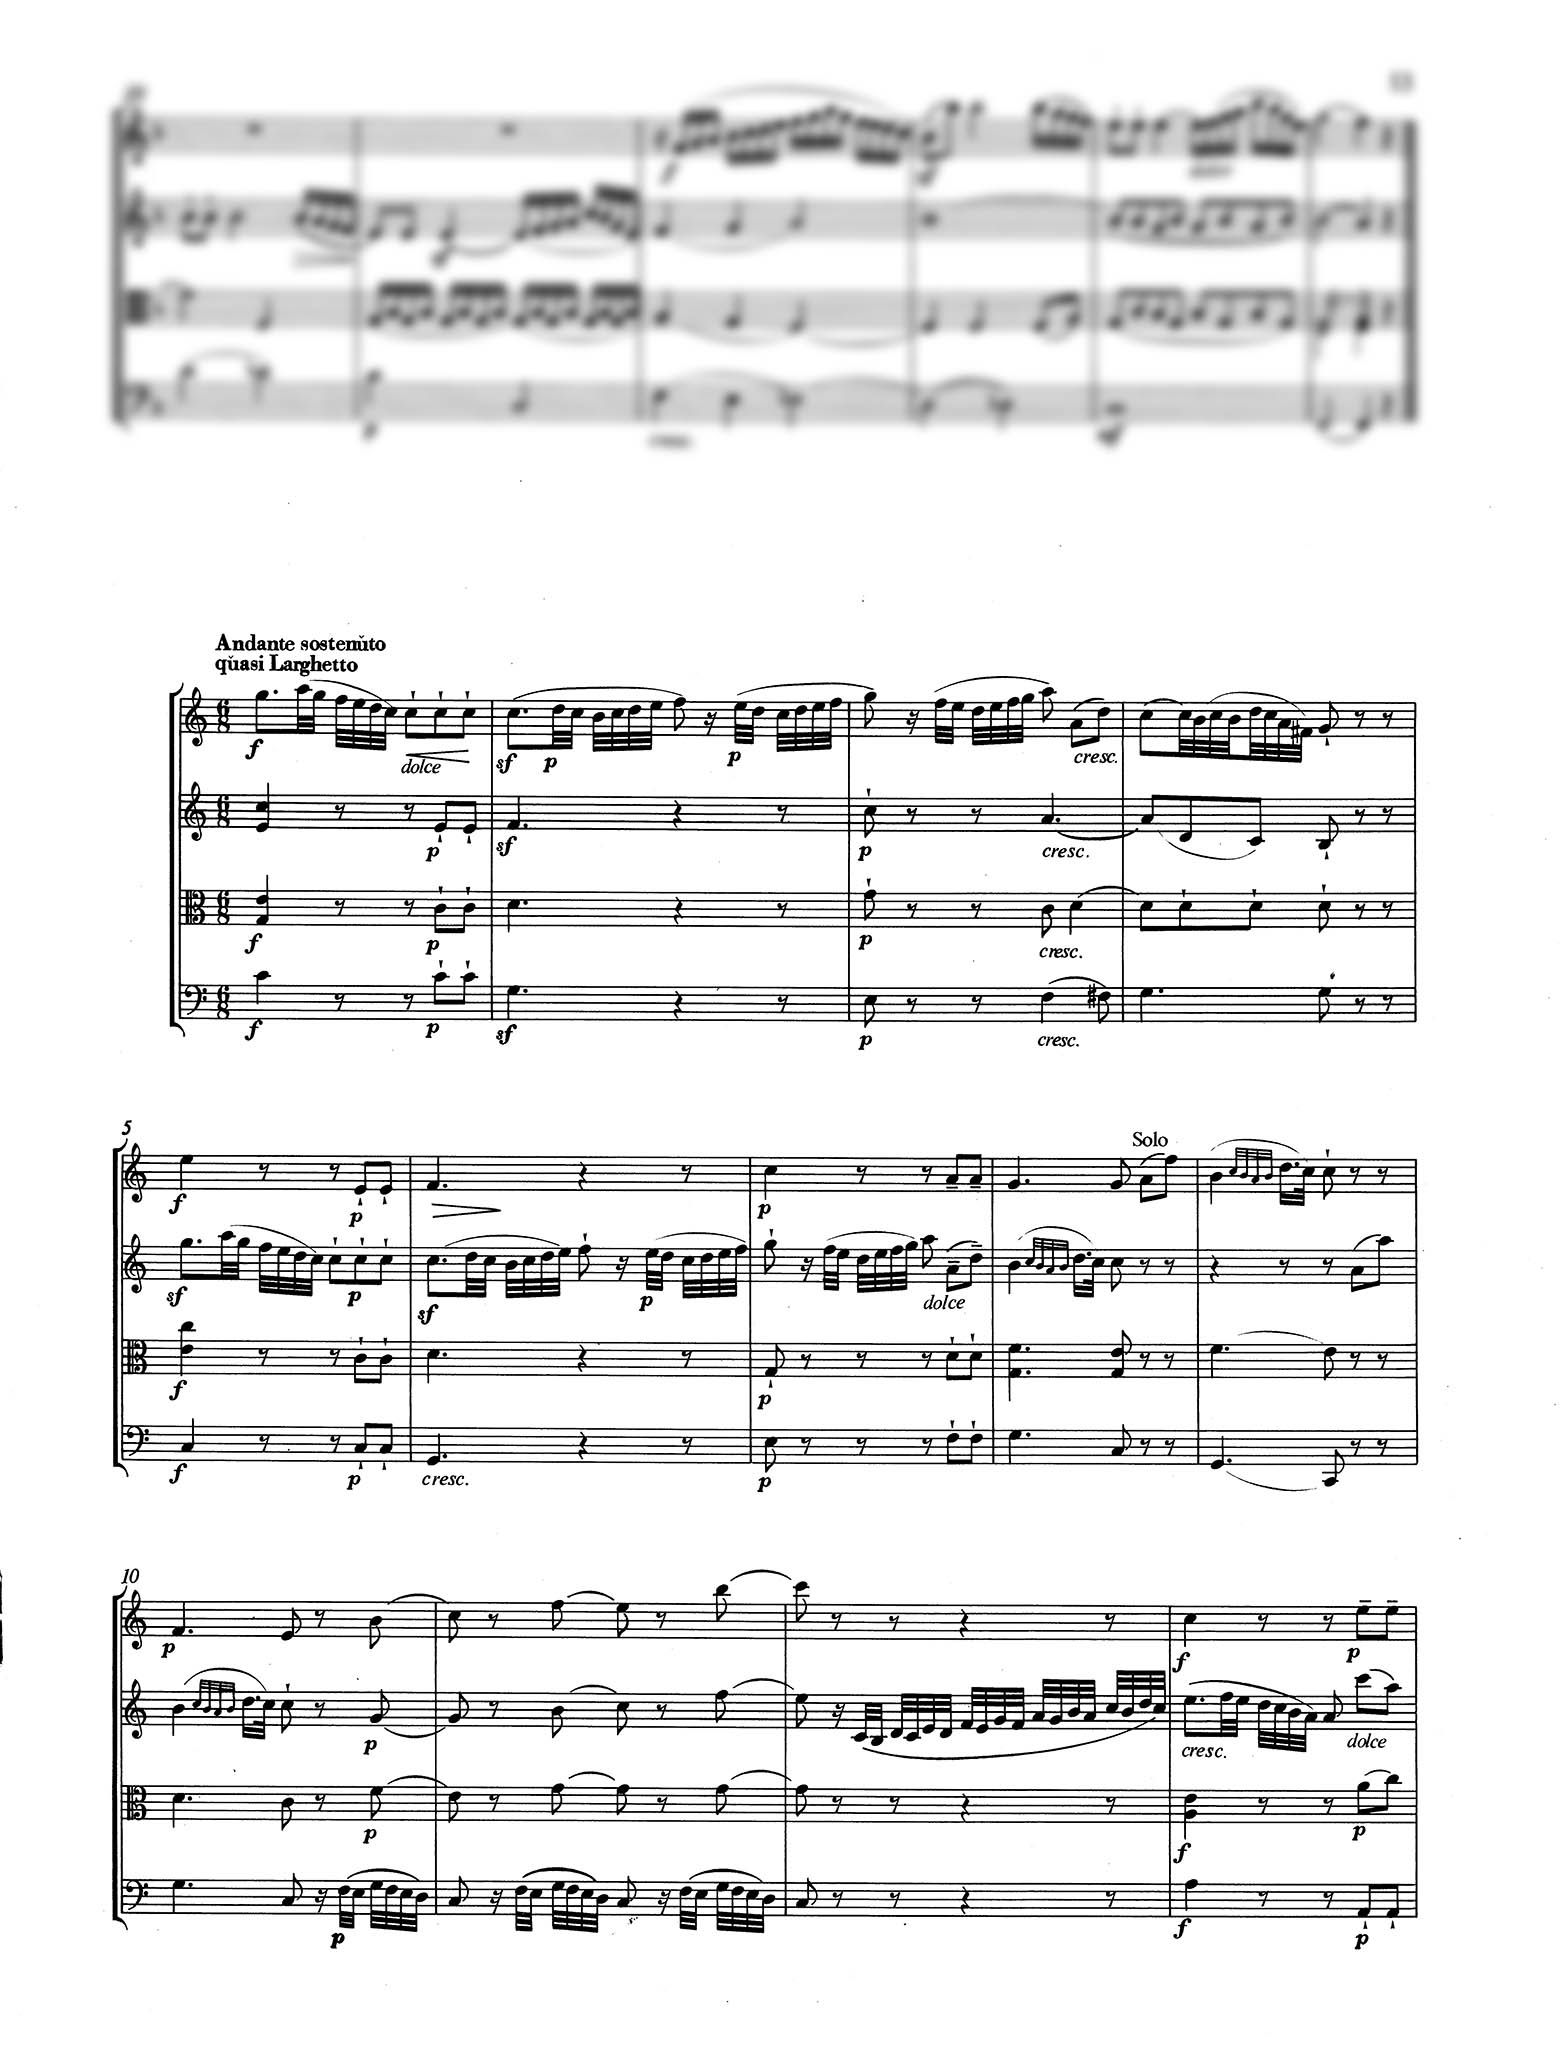 Piano Trio No. 1 in G Major, K. 496 - Movement 2